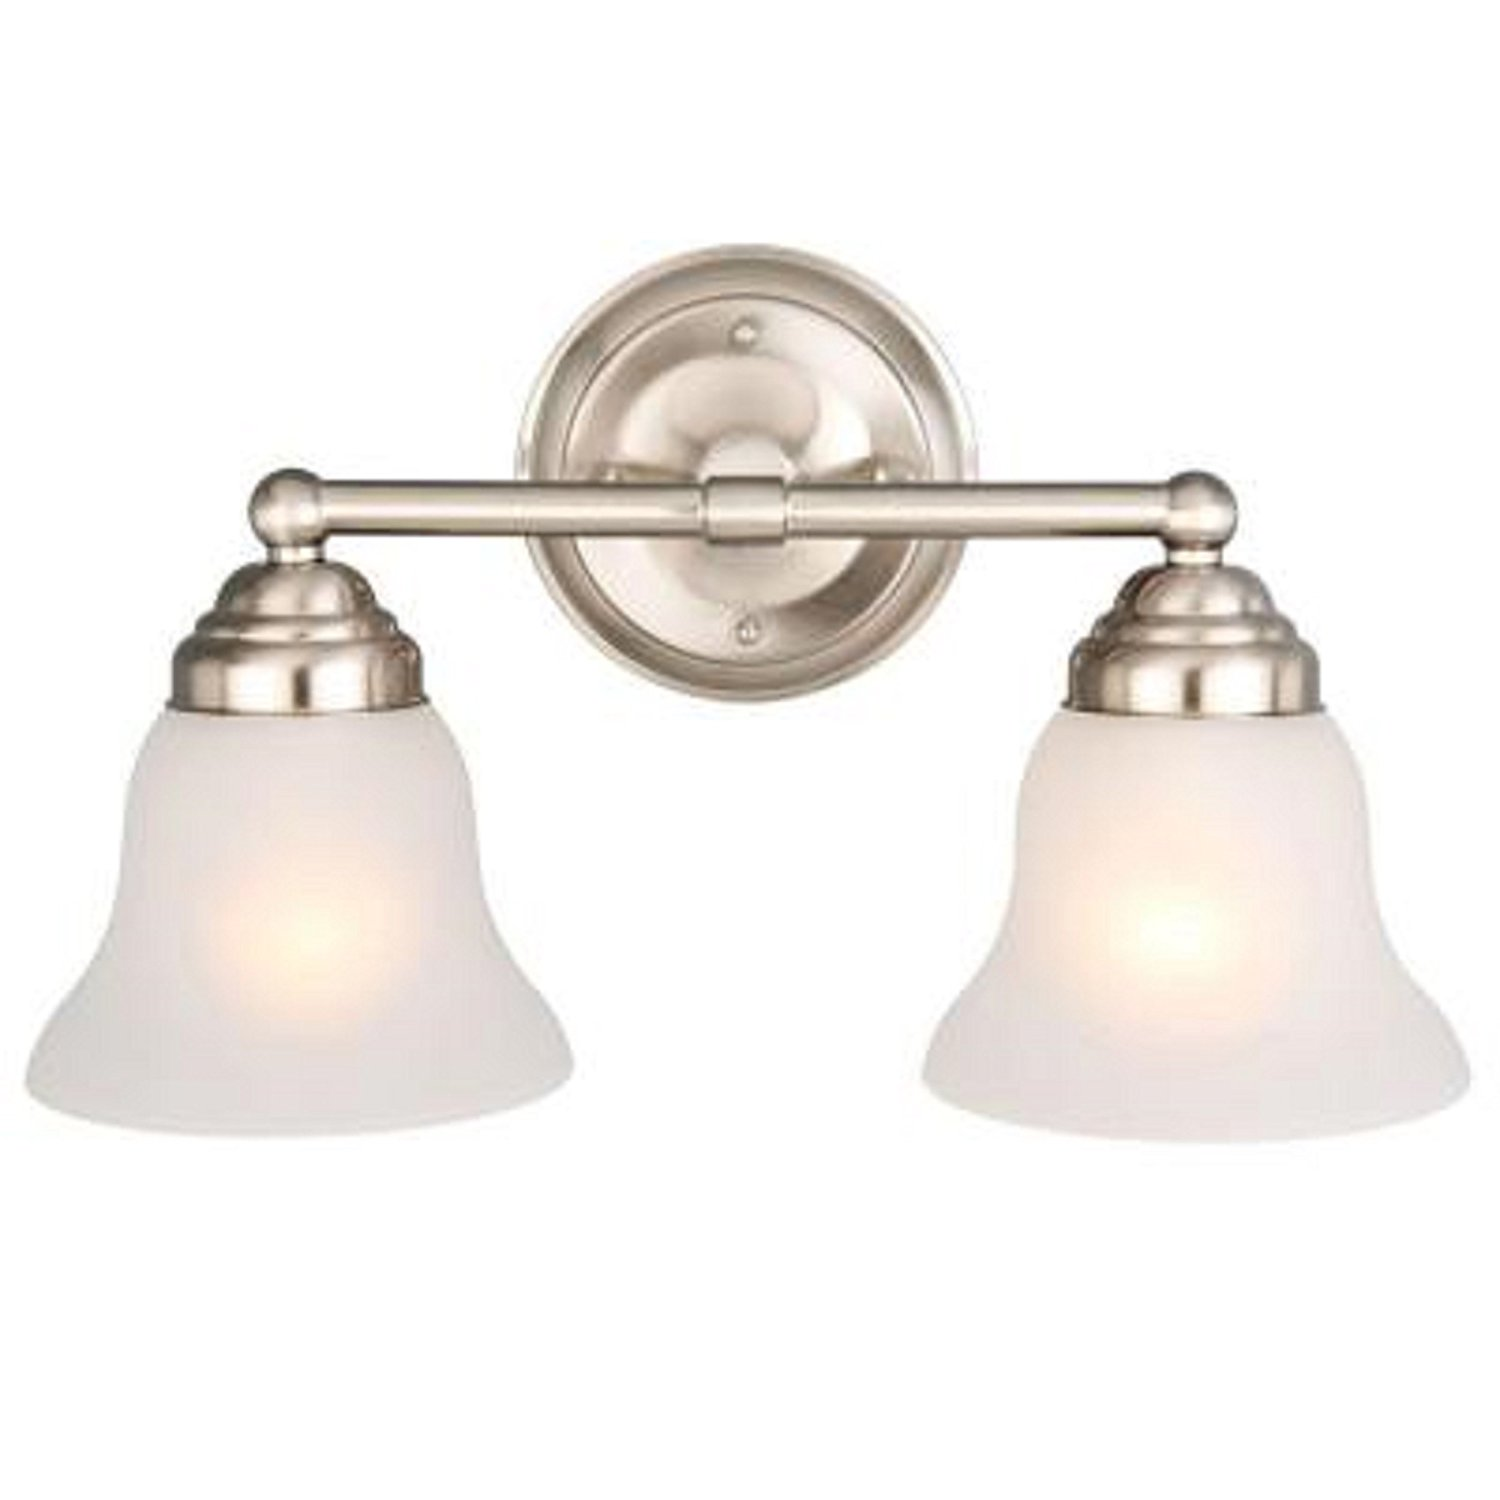 Get Quotations Hampton Bay 612 708 2 Light Brushed Nickel Vanity